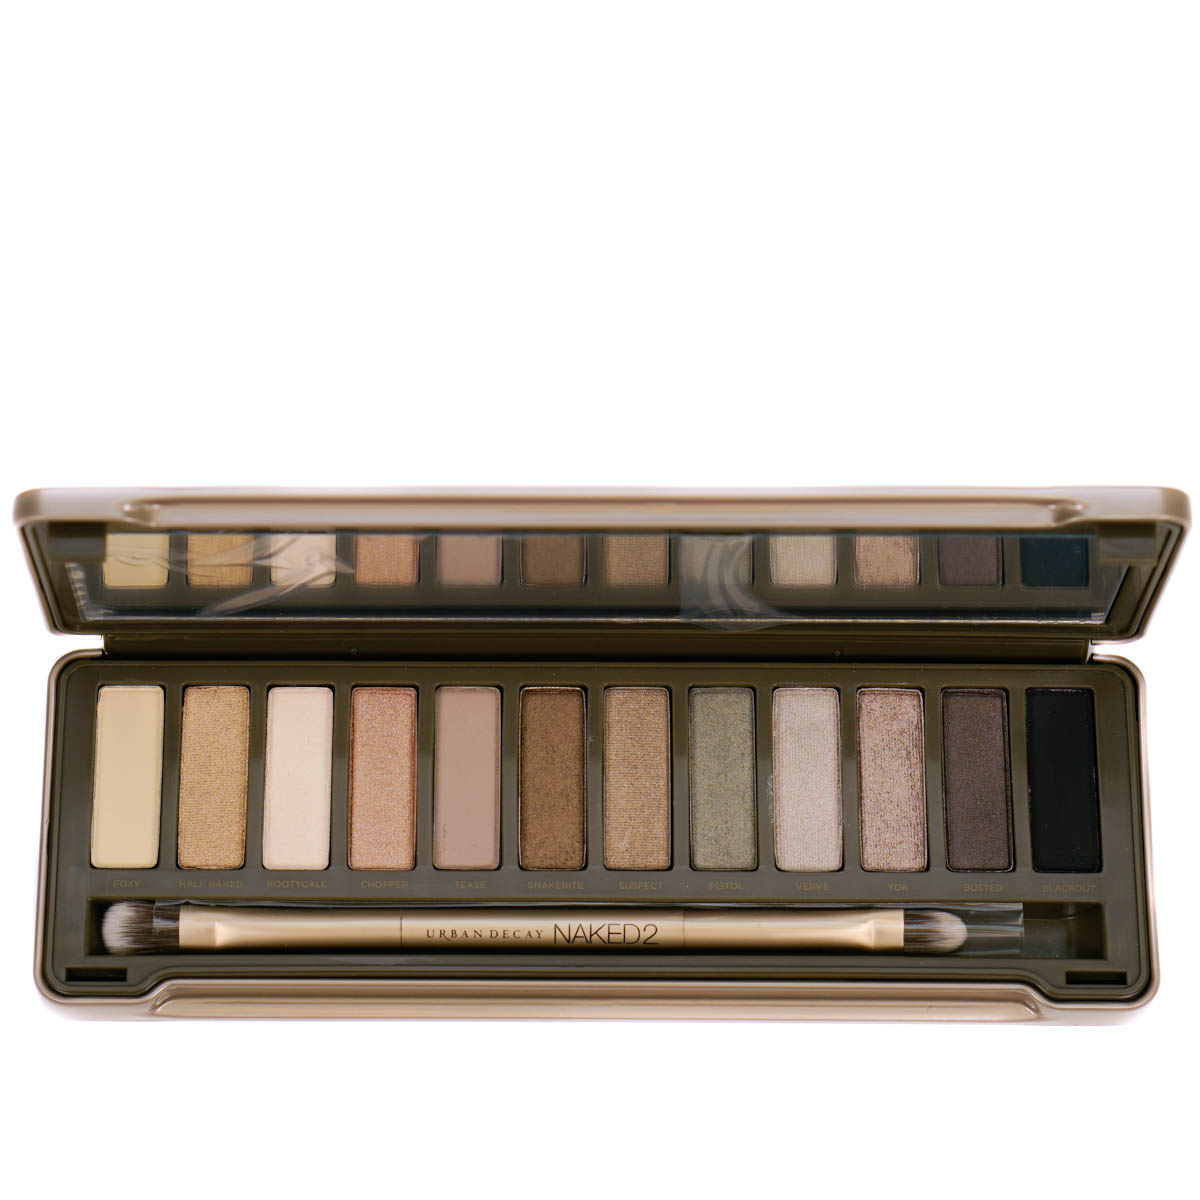 It Takes Urban Decay Naked2 to Make a Thing Go Right It